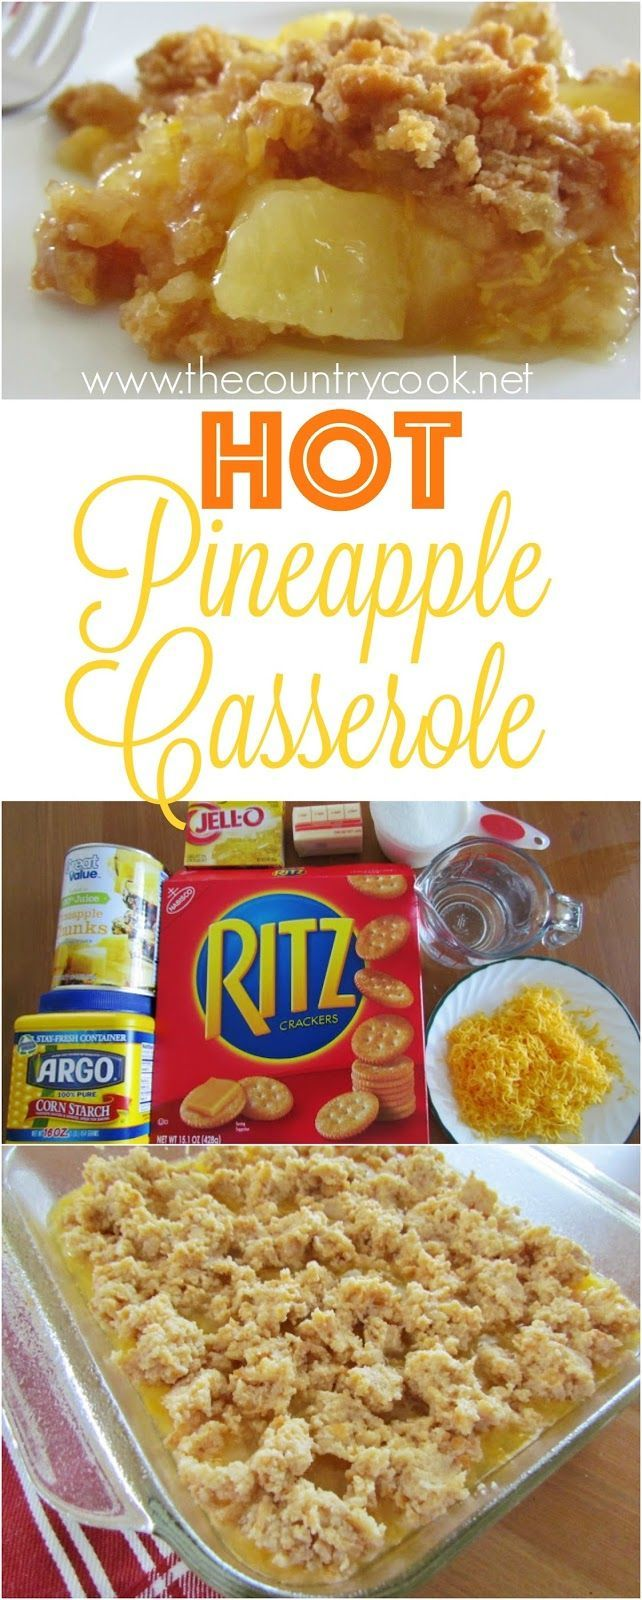 Hot Pineapple Casserole recipe from The Country Cook. One of my absolute FAVORITE southern dishes. This must be made at every single holiday in my house. SO goo!